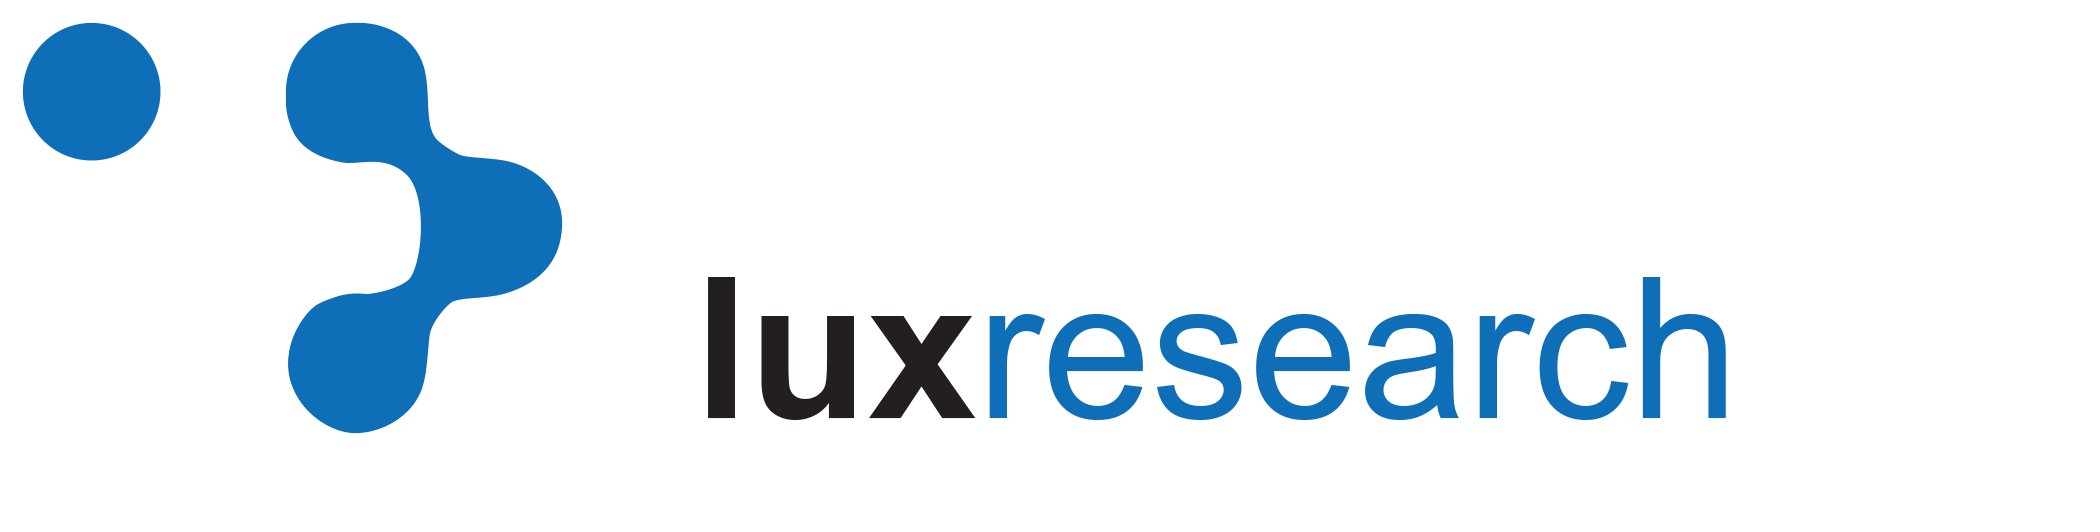 Lux Research - EU